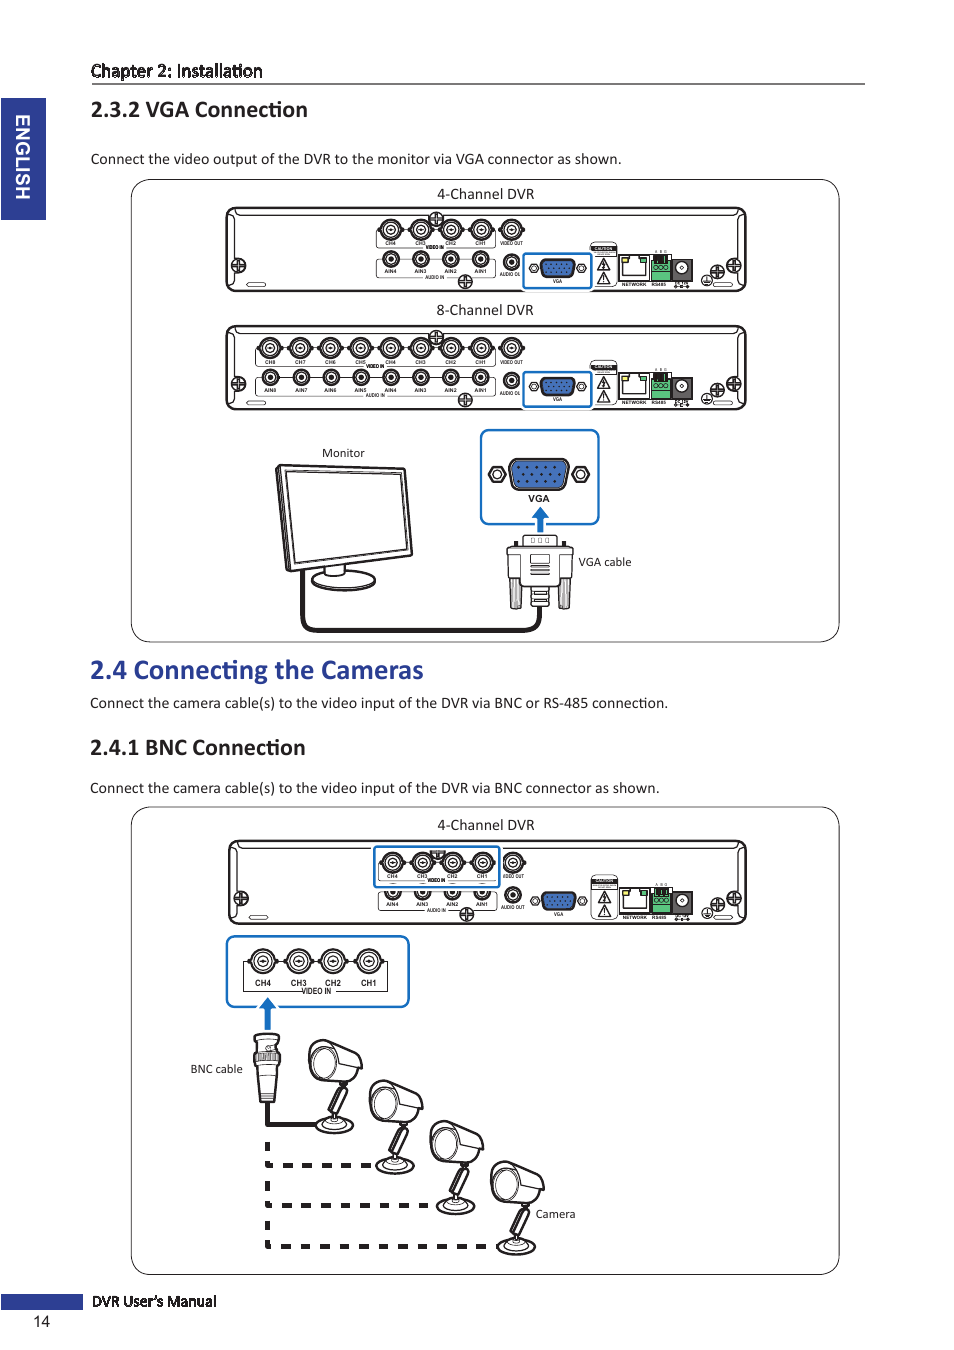 medium resolution of 2 vga connection 4 connecting the cameras 1 bnc connection english chapter 2